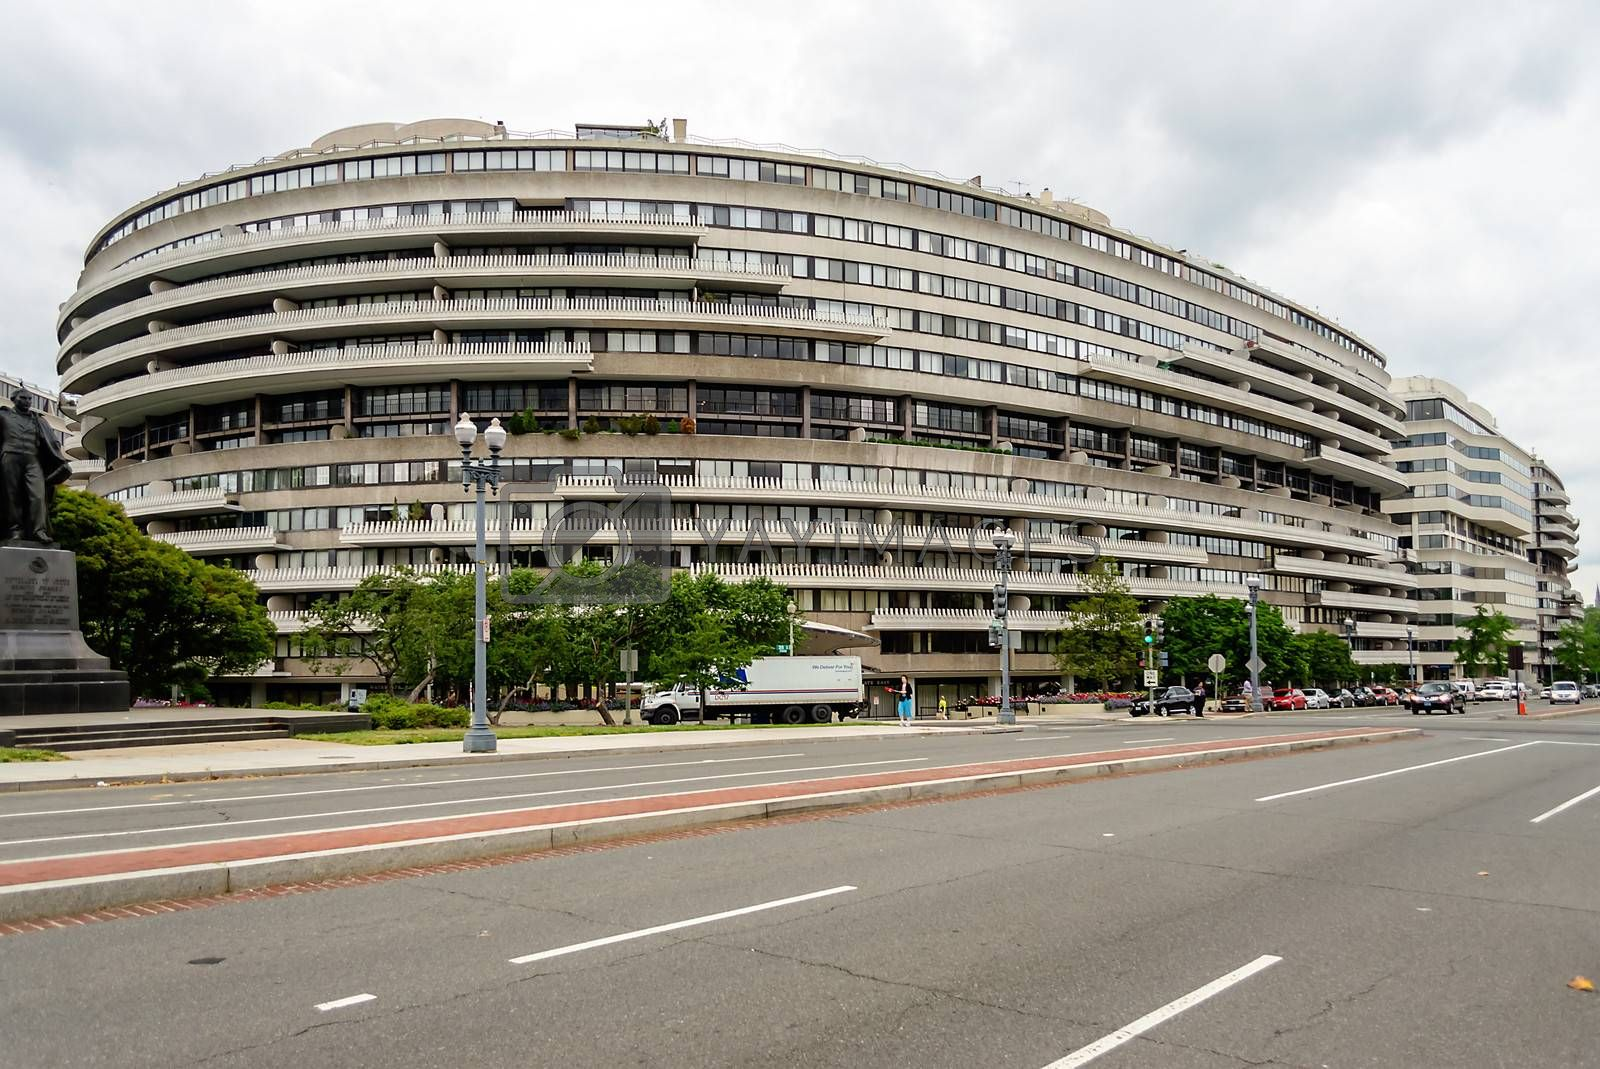 Watergate Complex, Washington DC by Marco Rubino